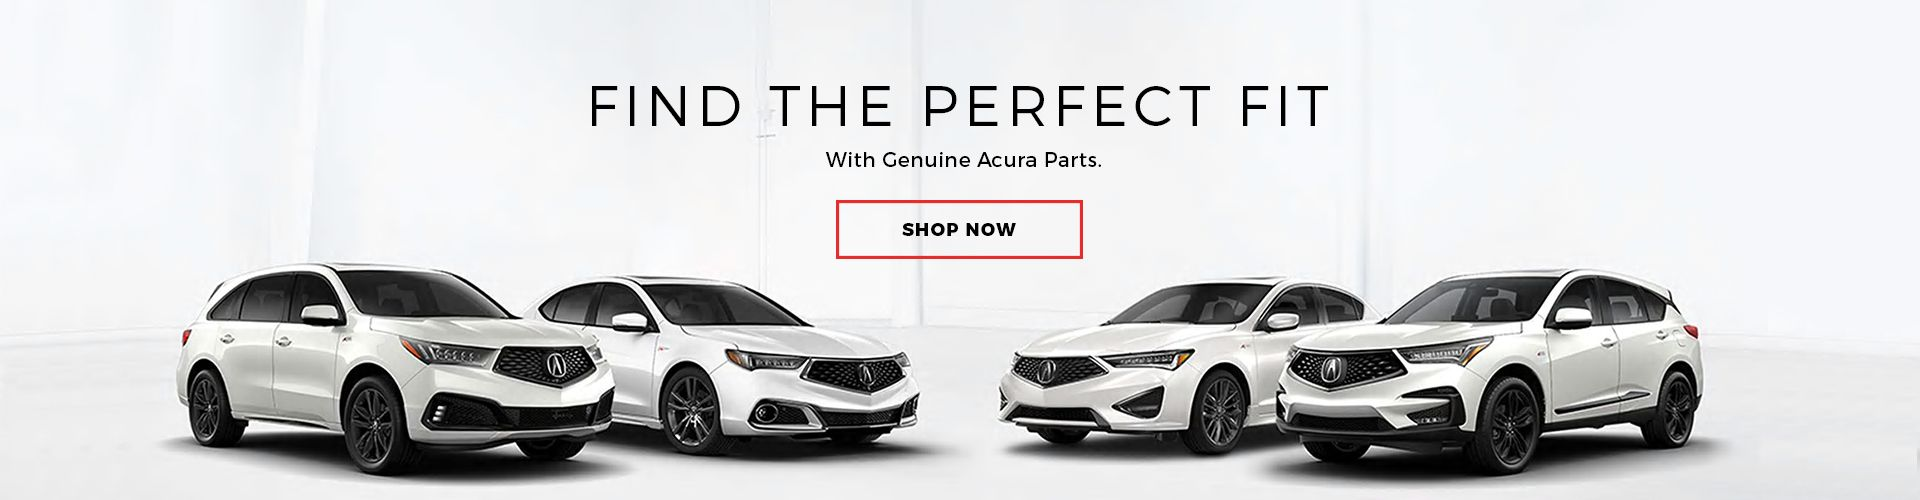 Acura Genuine Parts